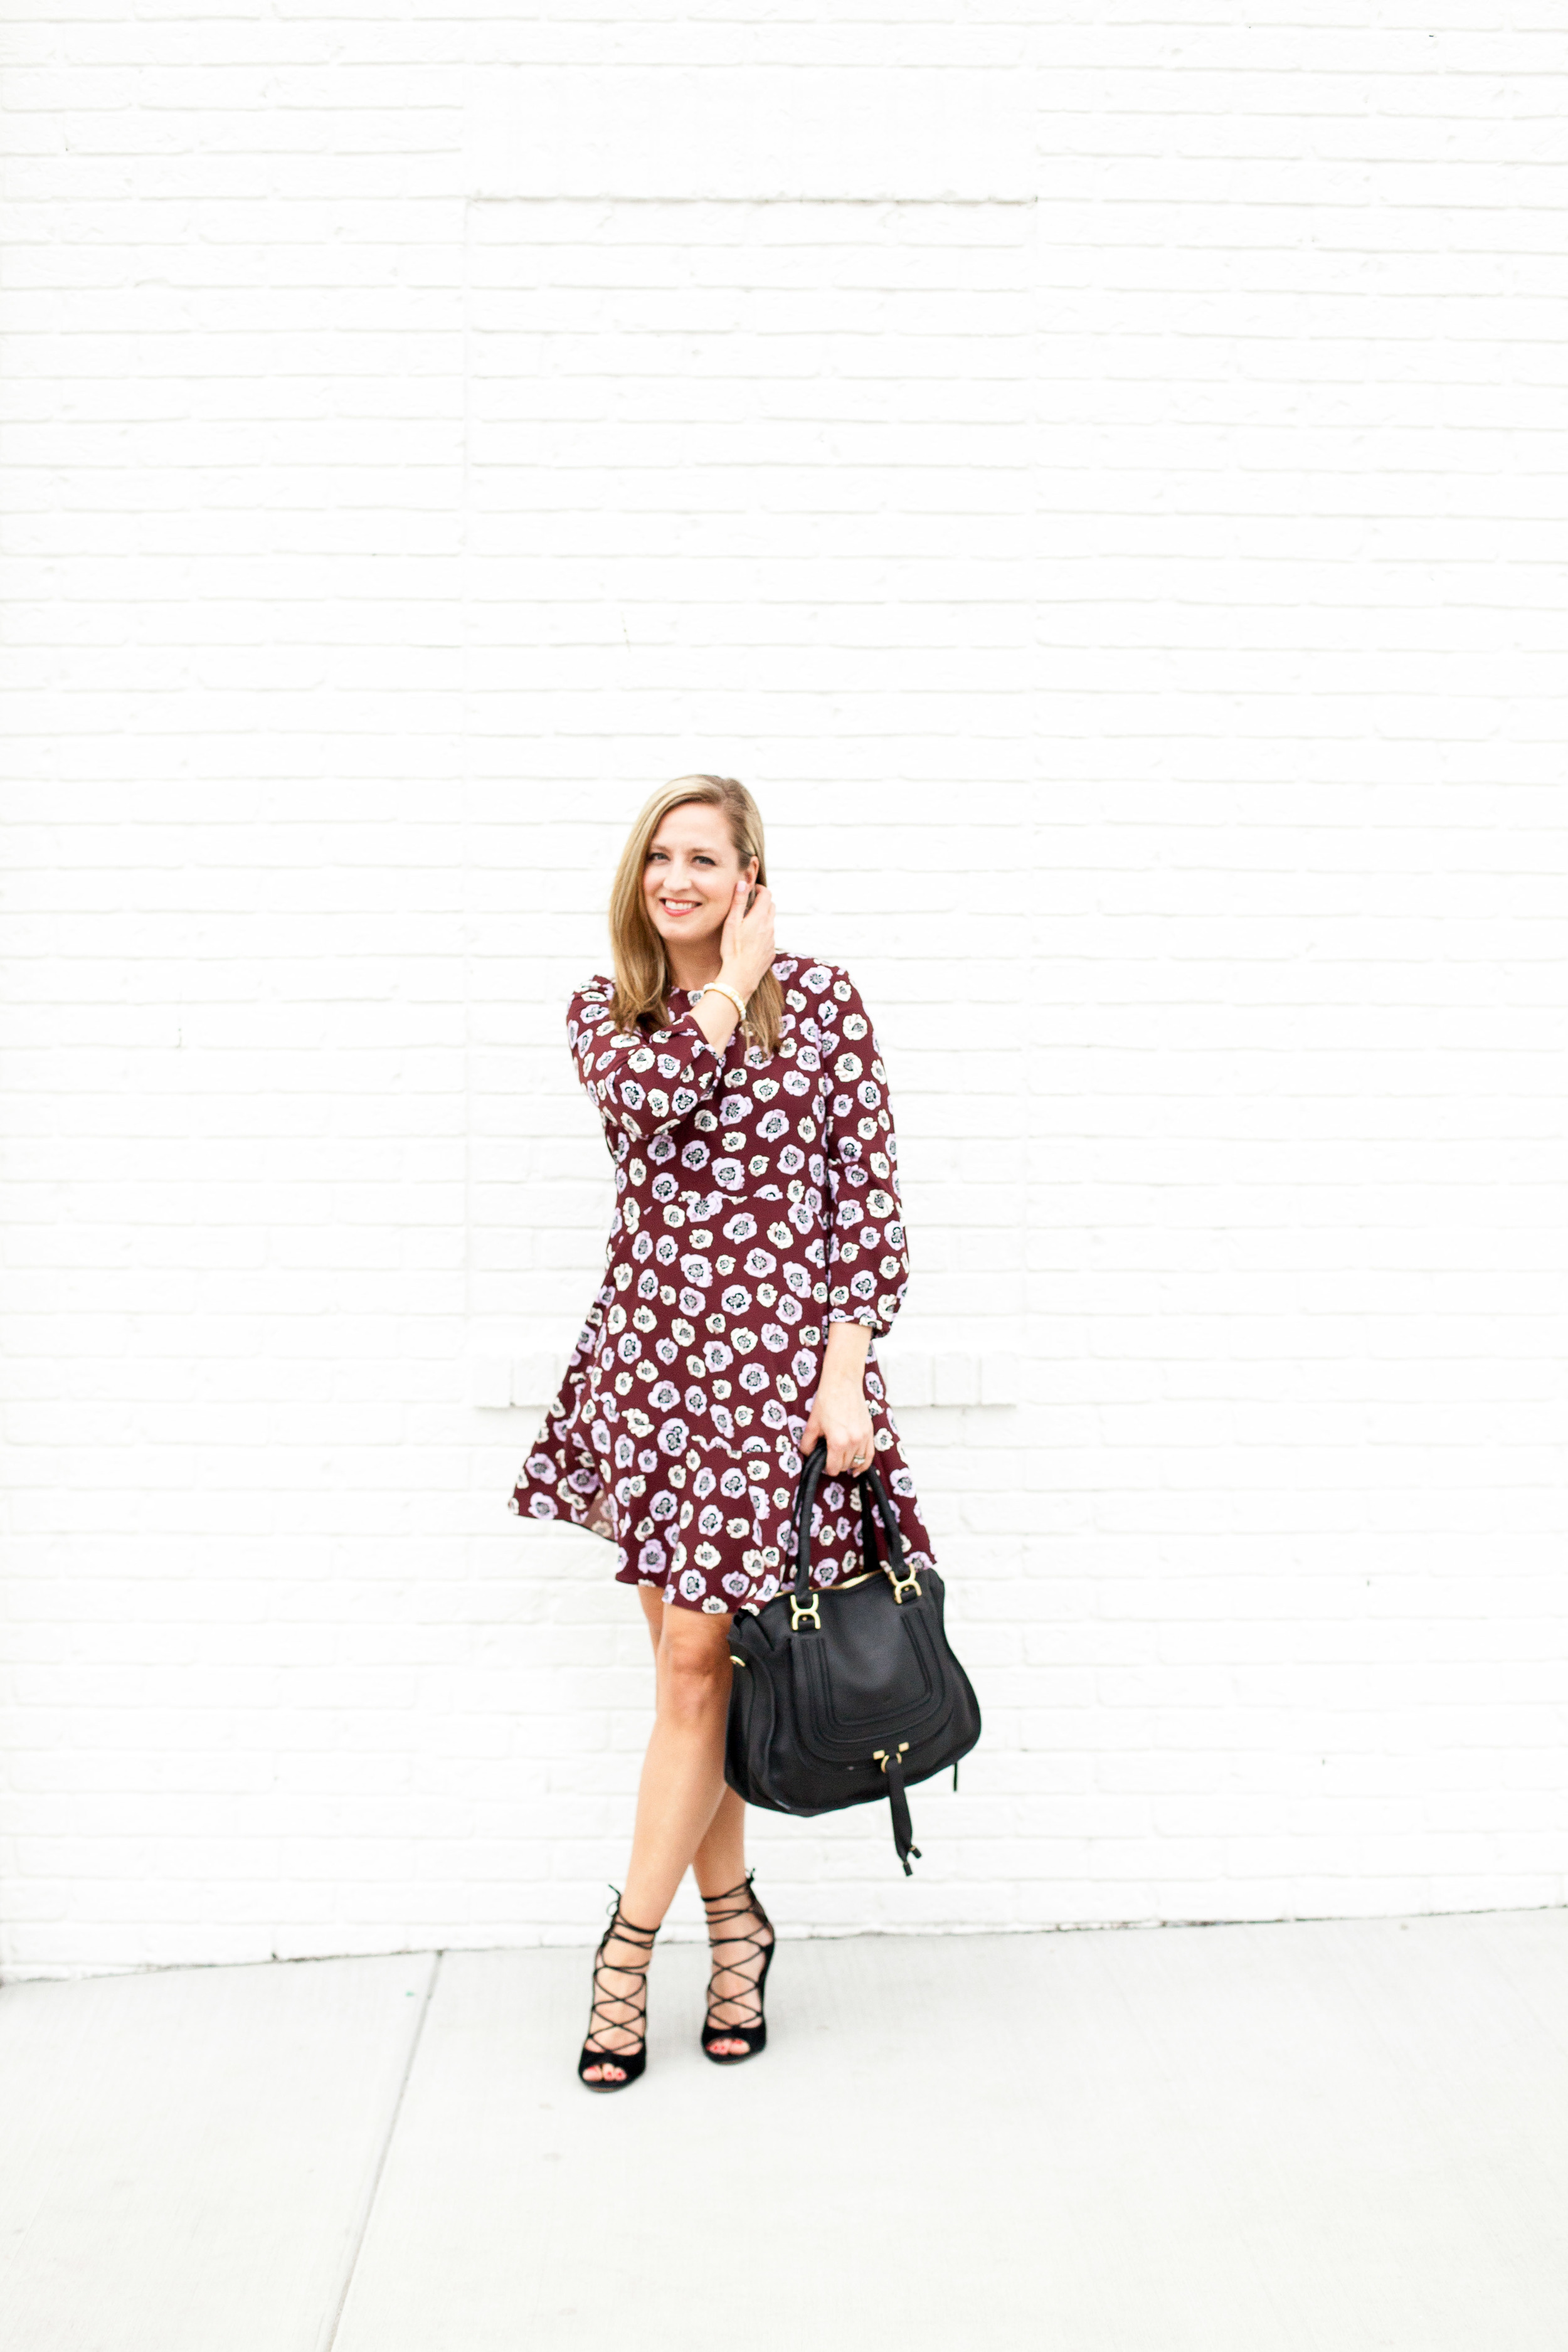 kate_davis_jackie_blog_2.20.16_0059.jpg